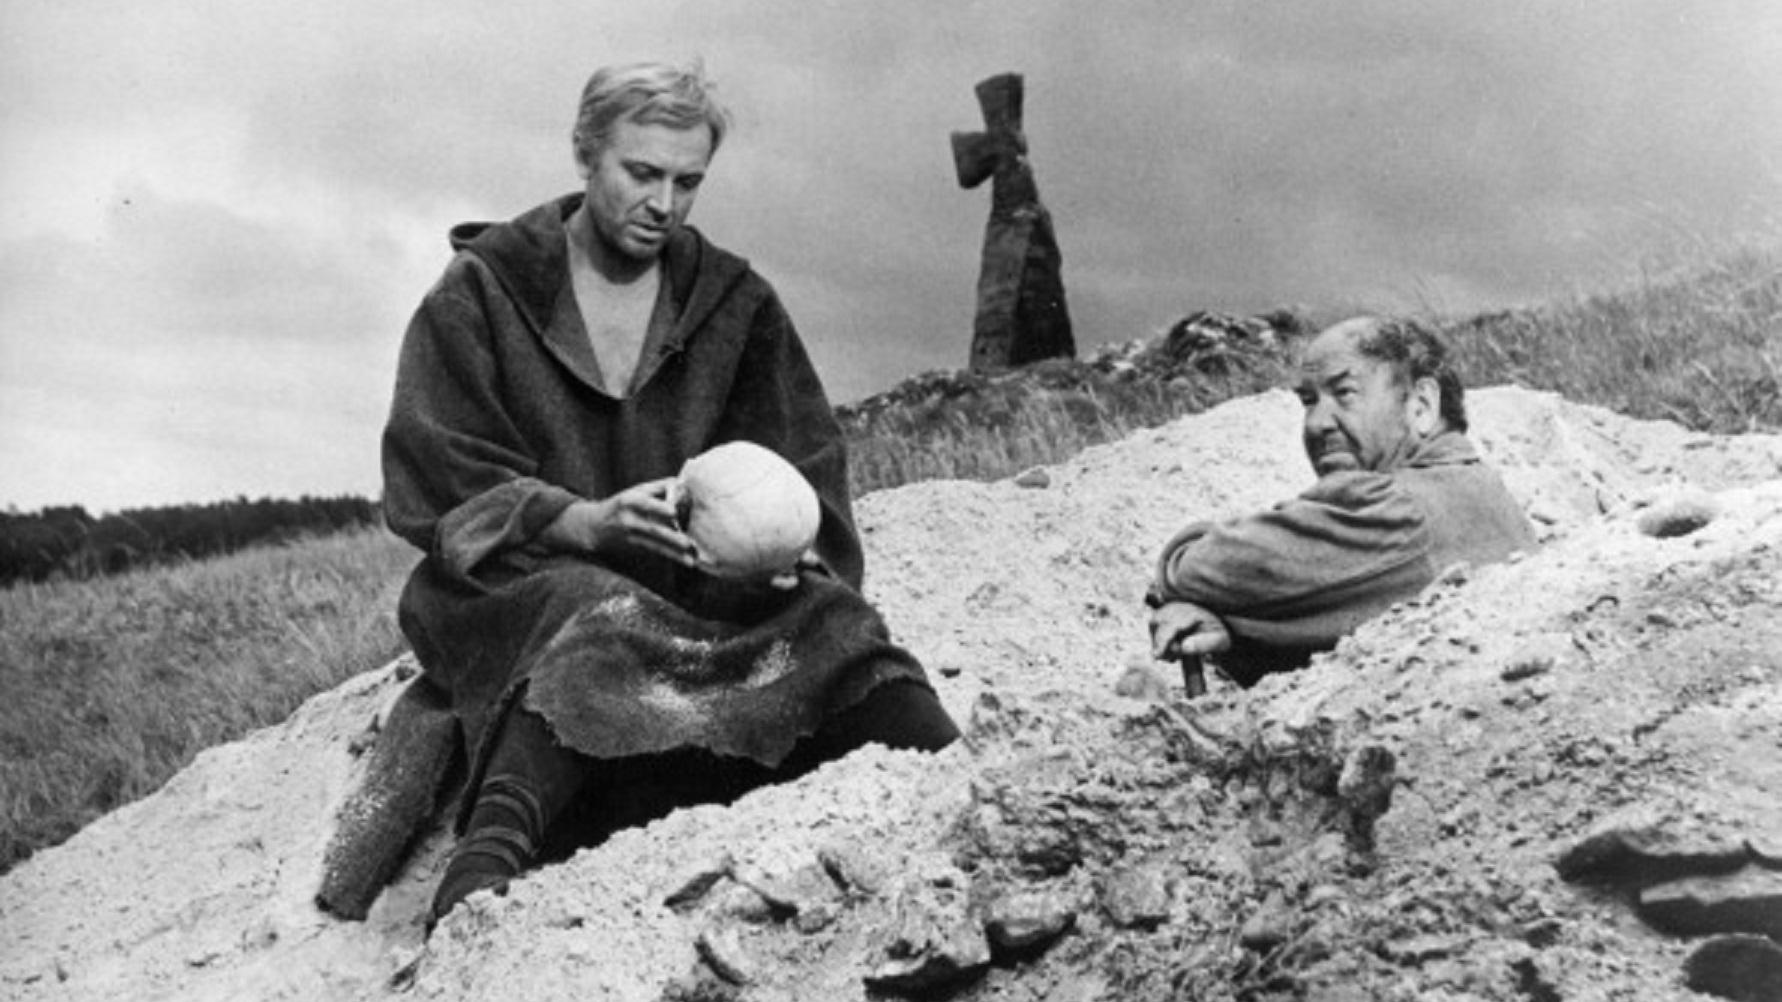 the mystery of death in the play hamlet The official mystery science theater 3000 info club web site episode 1009- hamlet movie summary: leave it to germany to turn a bleak brooding play into an even bleaker, broodinger movie-of-the-week for german television.